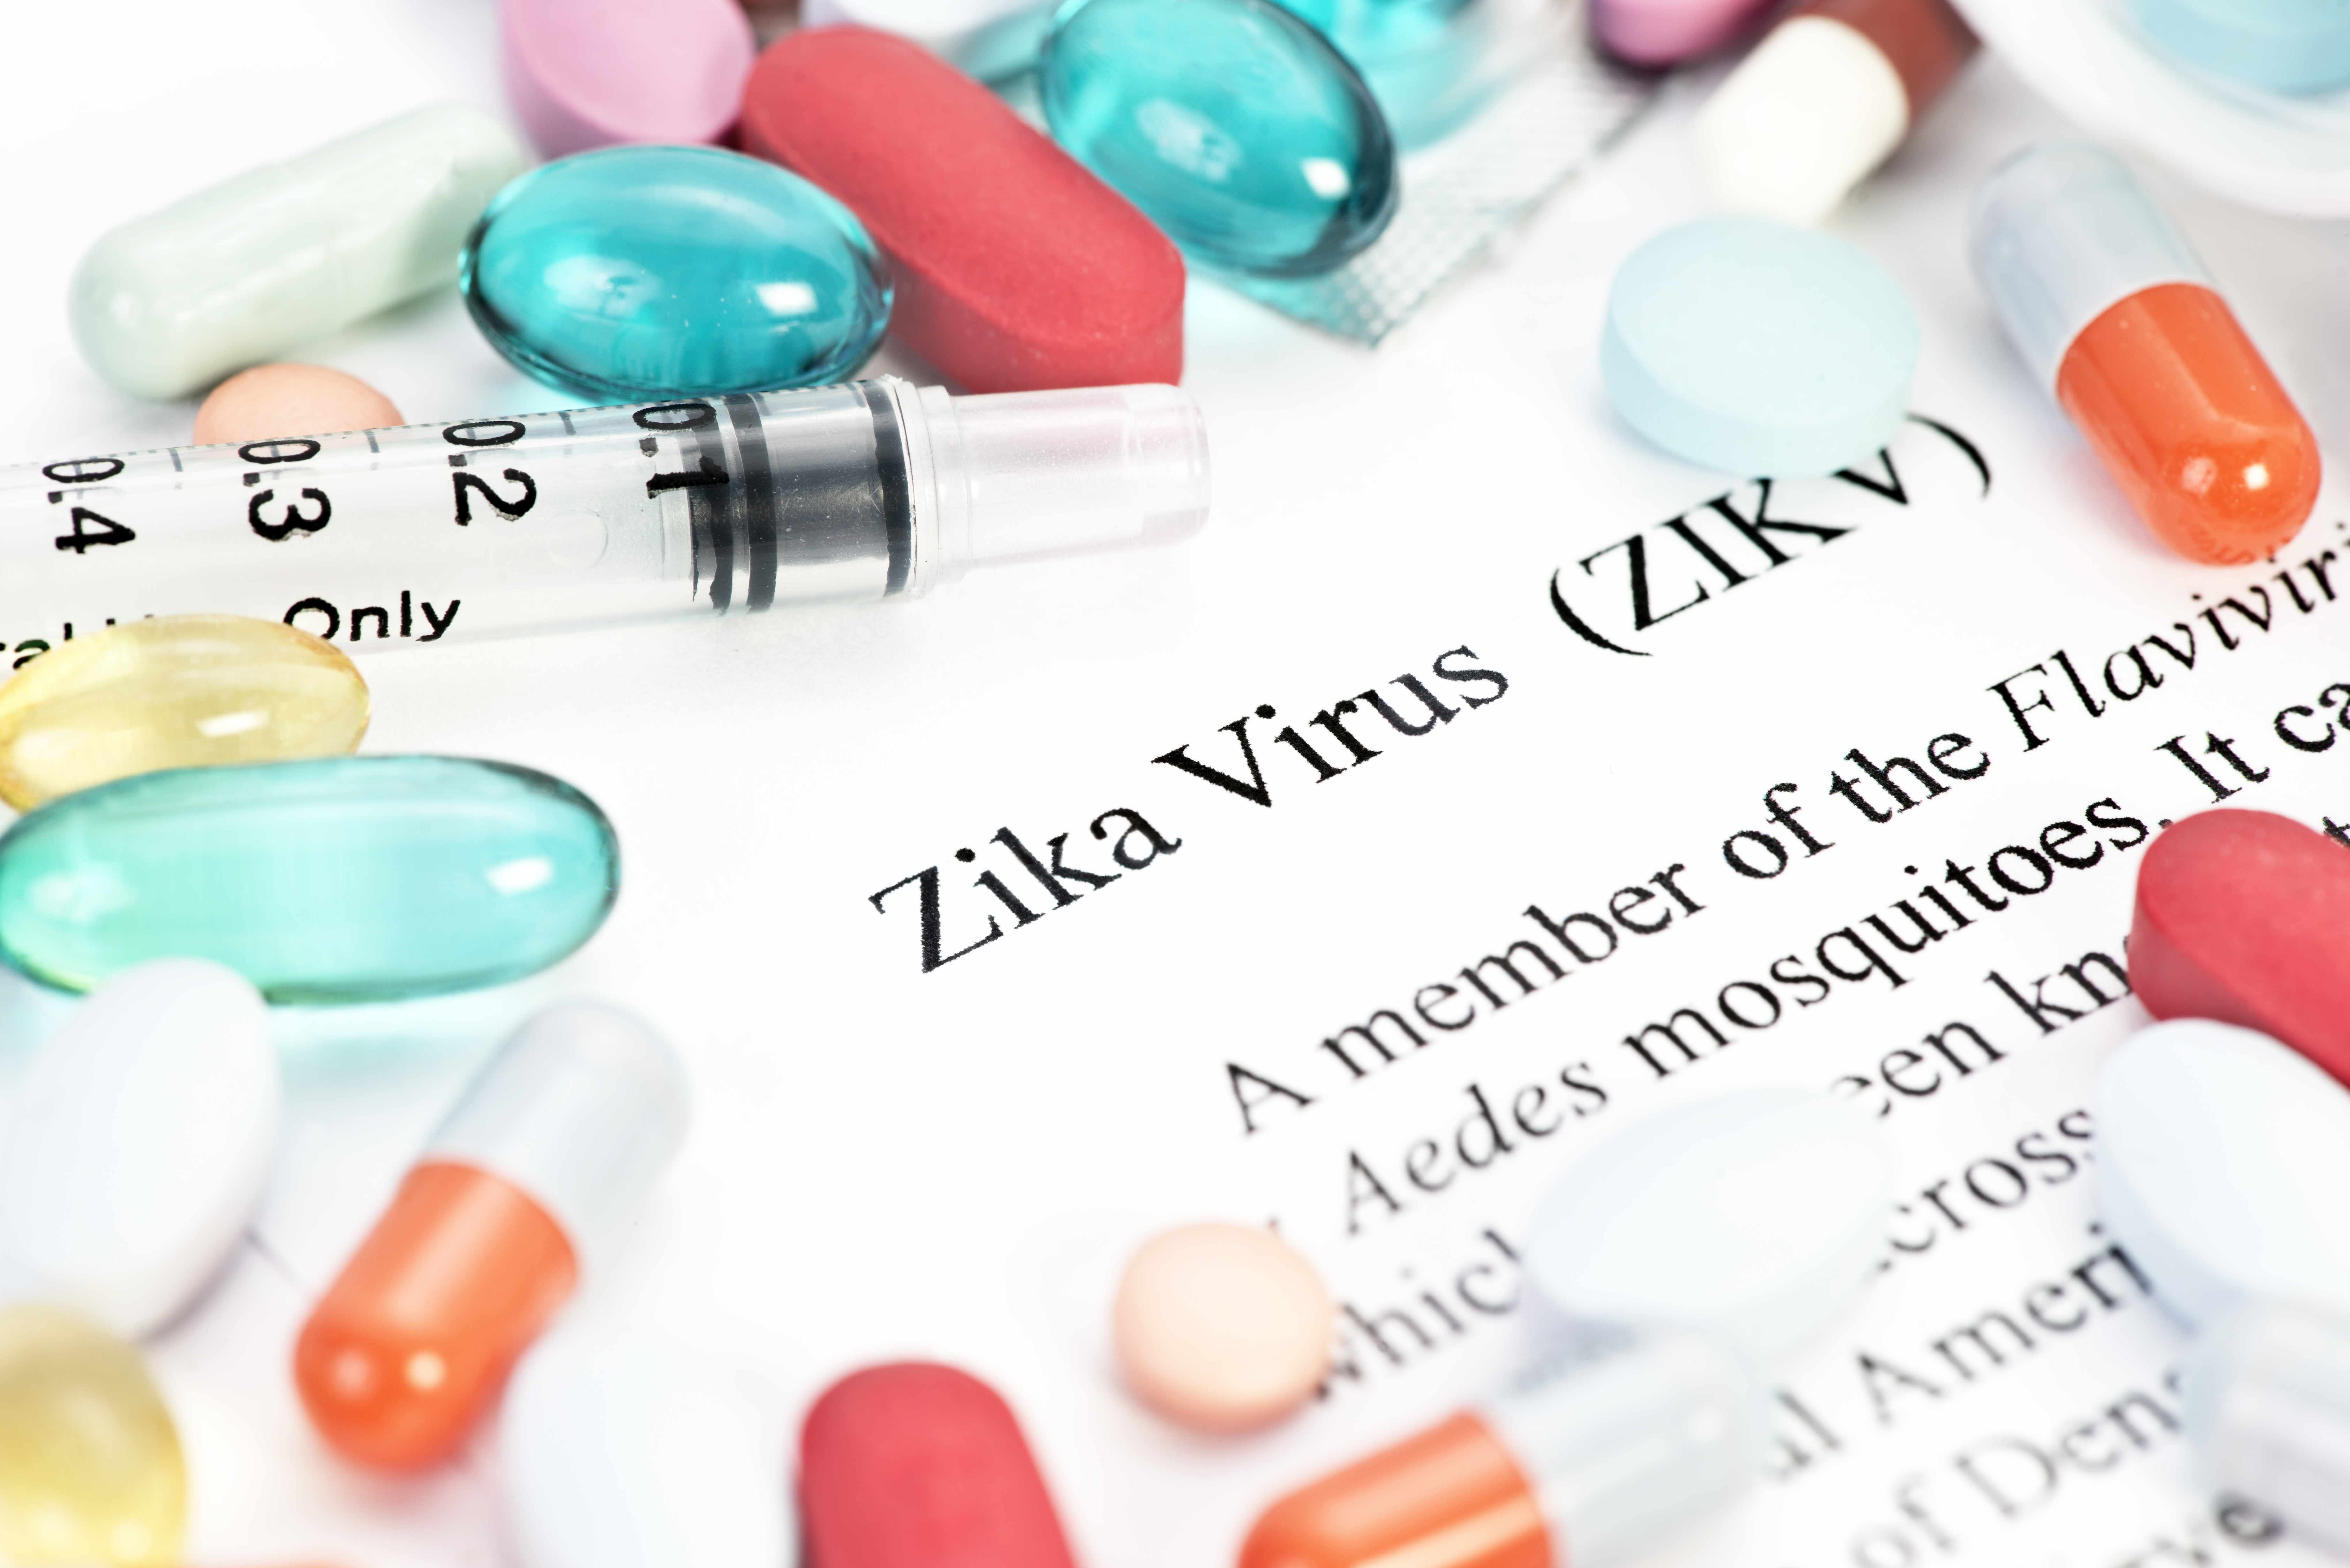 word definition of zika virus with a syringe and pills